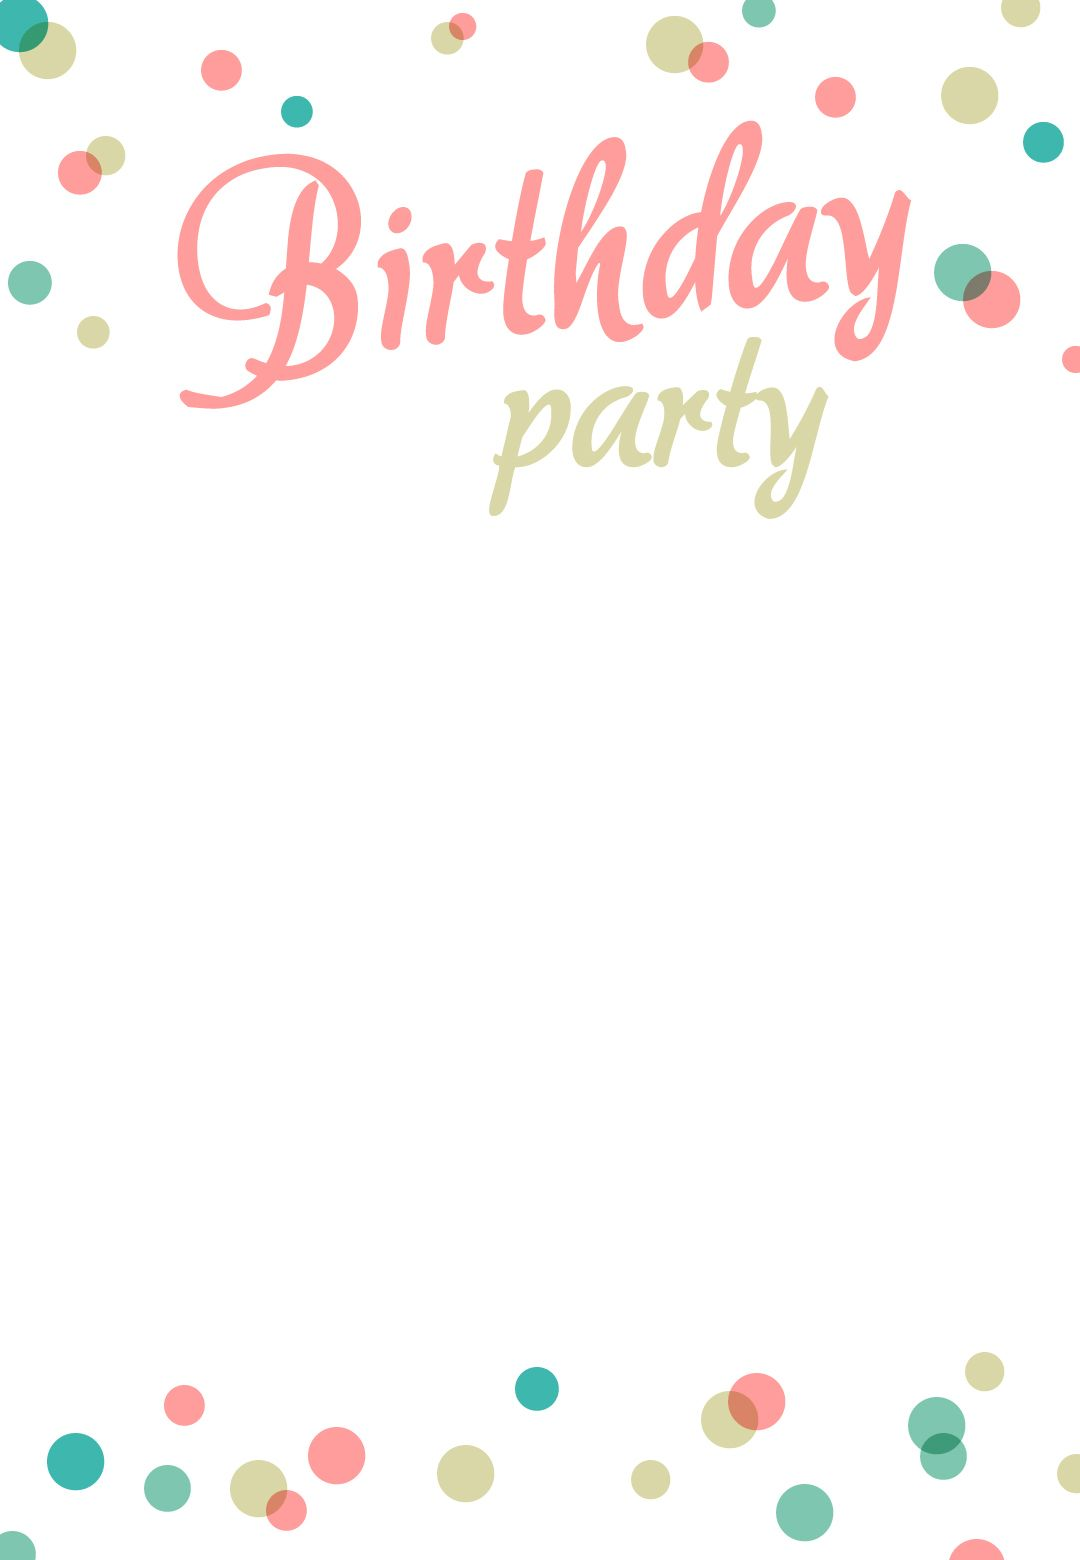 Birthday Party Dots - Free Birthday Invitation Template | … | Birthday  party invitations printable, Free party invitation templates, Birthday  party invitations free